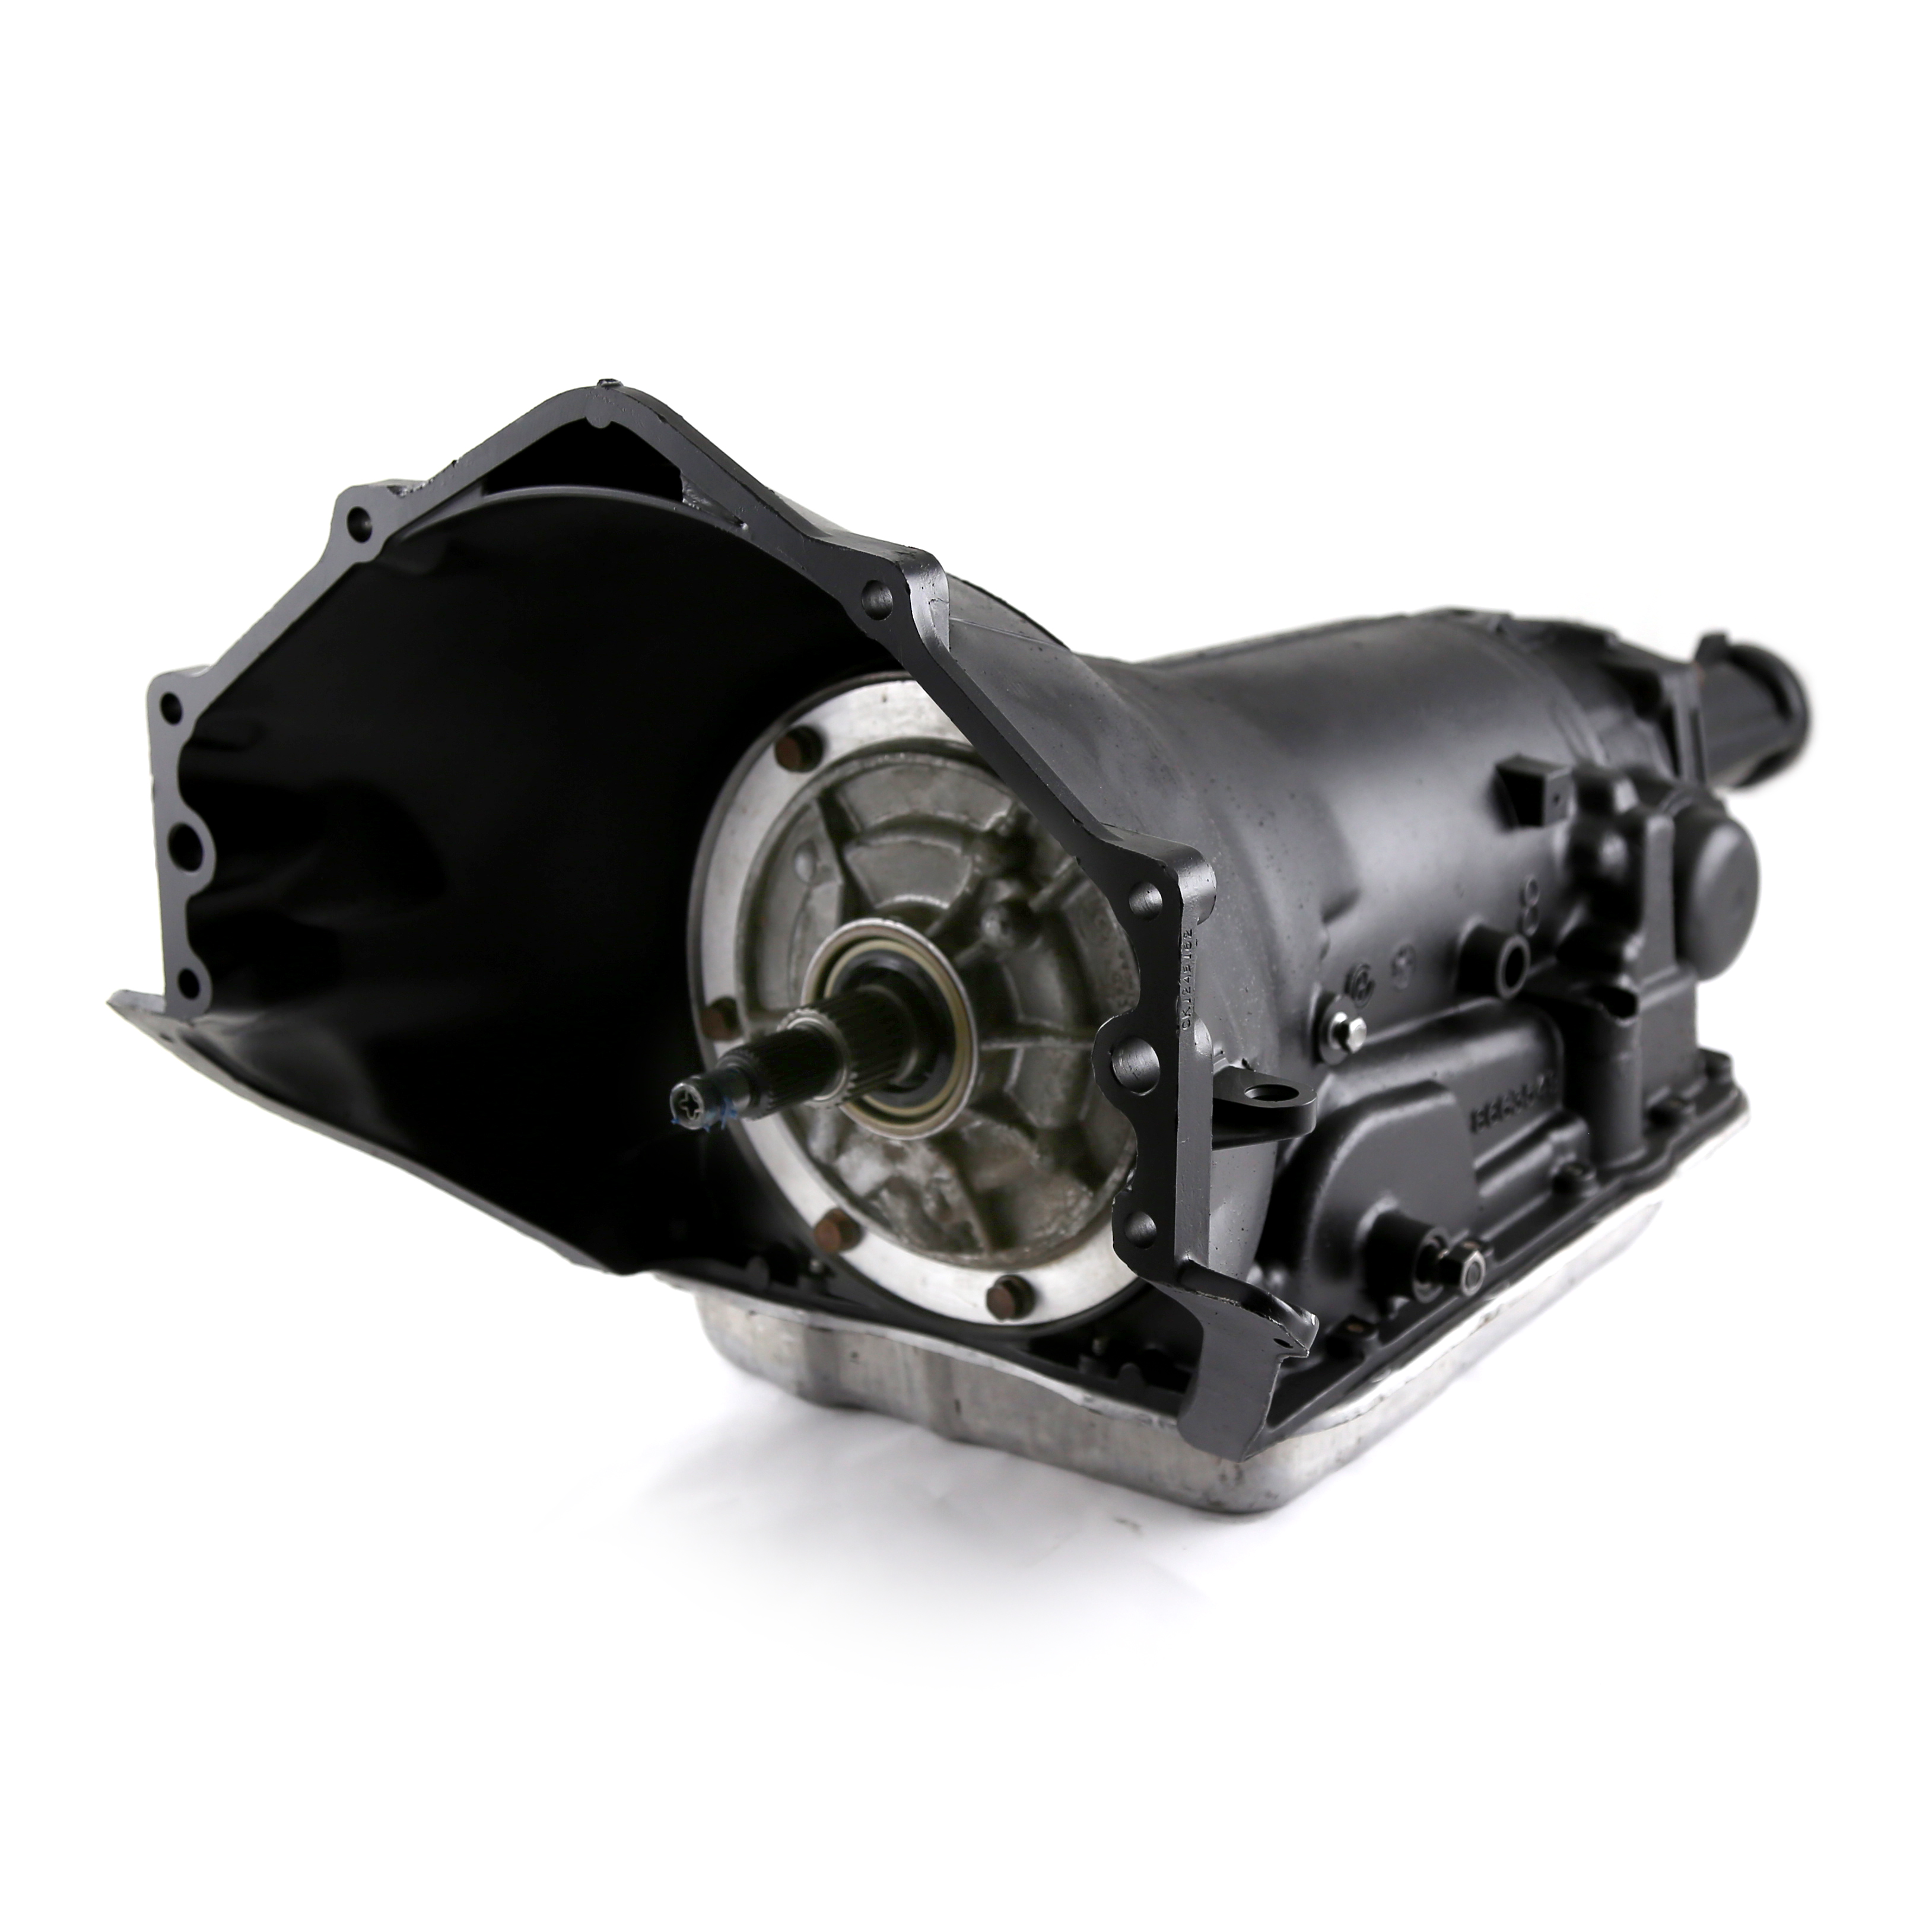 Remanufactured Automatic Transmission: Turbo 700R-4 Th700R-4 Gm Performance Rebuilt Overdrive